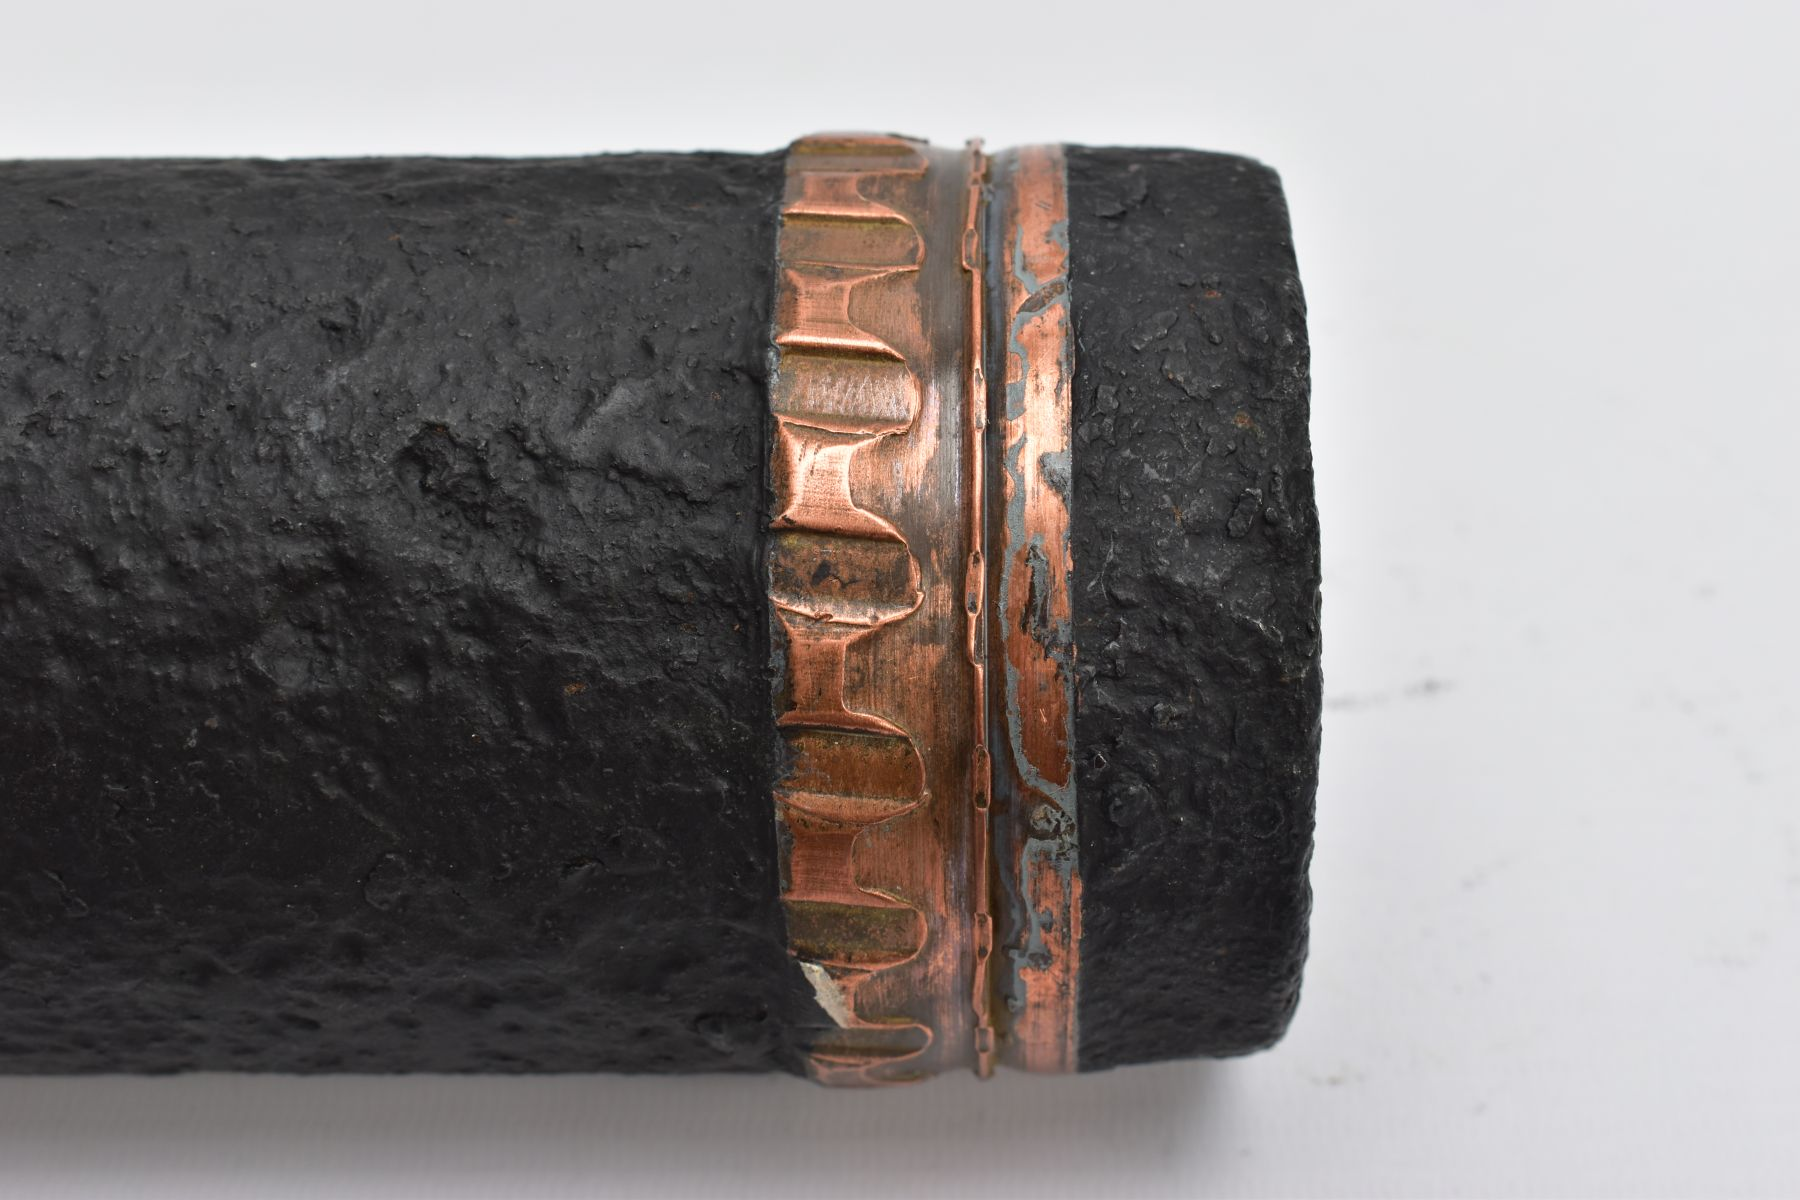 A 30CM TALL WWI ERA ARTILLERY/FIELD GUN SHELL, complete with fuse, BSC marked (Bethlehem Steel - Image 4 of 7